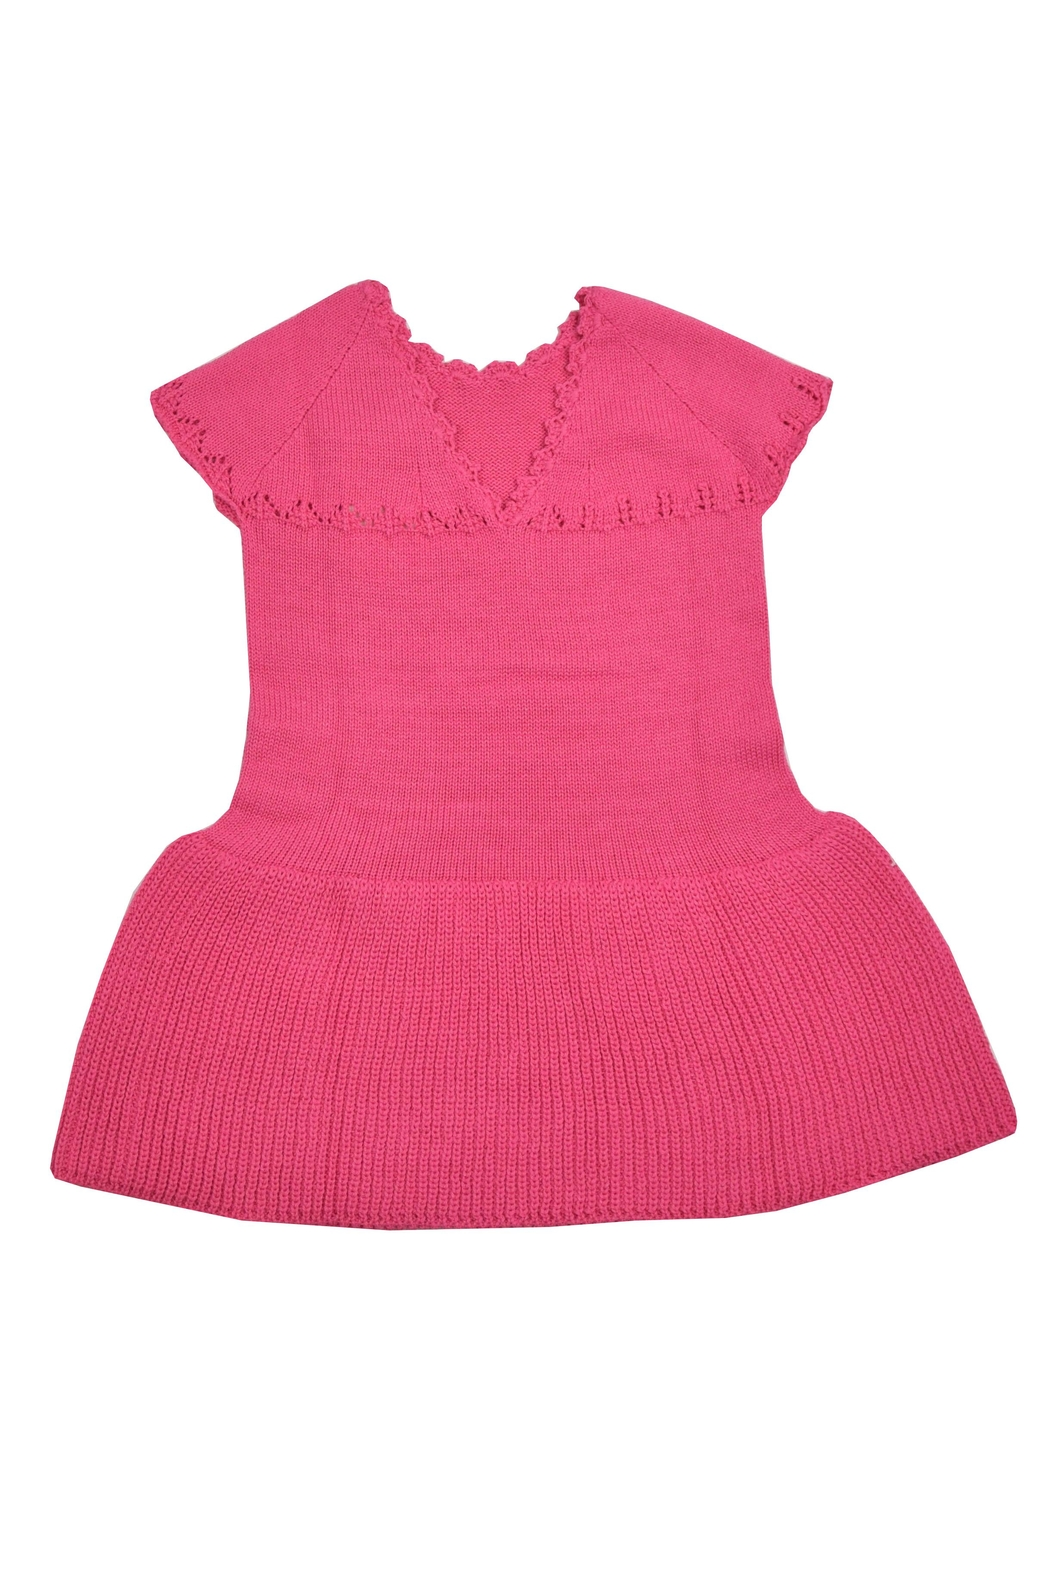 cesar blanco Fuchsia Knitted Dress - Front Full Image